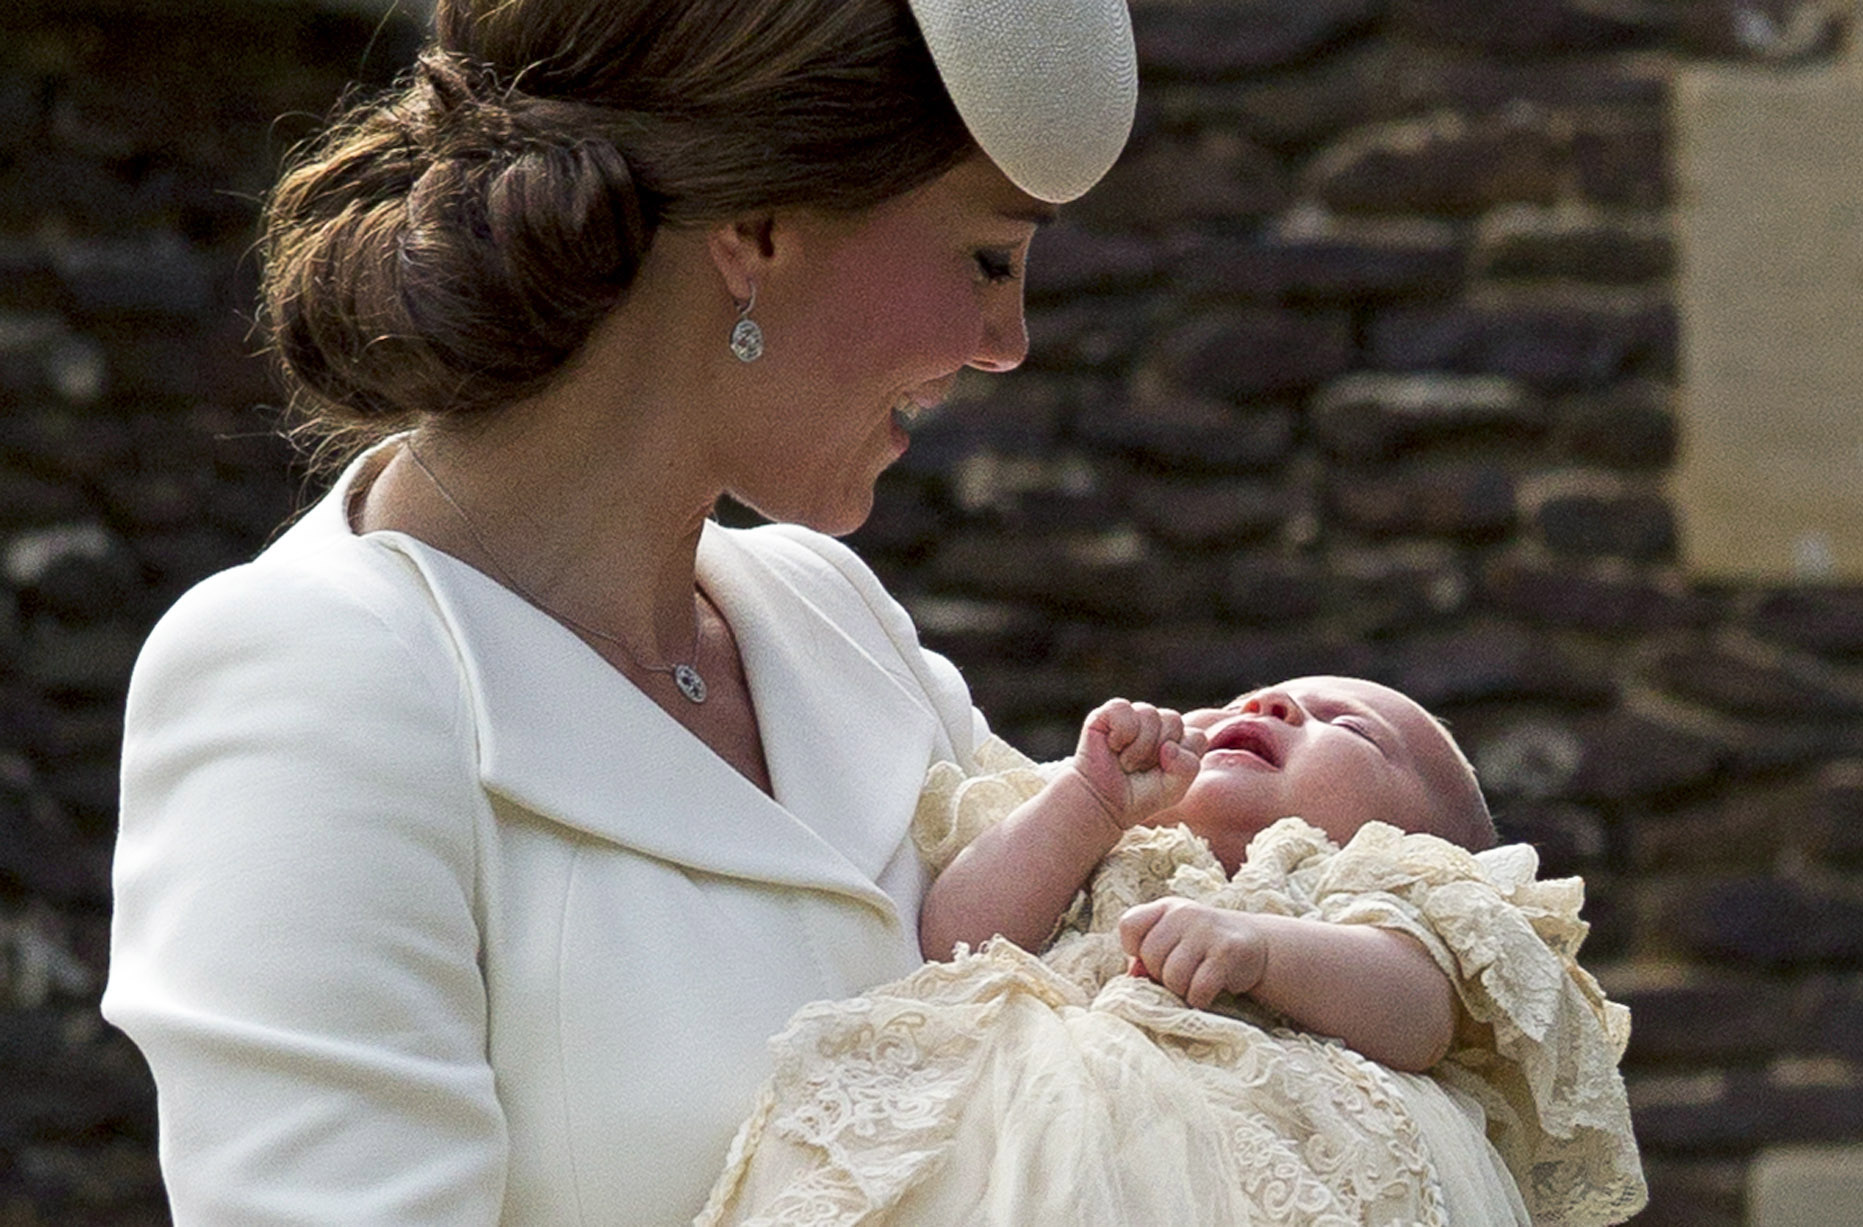 Catherine, Duchess of Cambridge, carries Princess Charlotte of Cambridge as they arrive at the Church of St Mary Magdalene on the Sandringham Estate for the Christening of Princess Charlotte of Cambridge in King's Lynn, England on July 5, 2015.